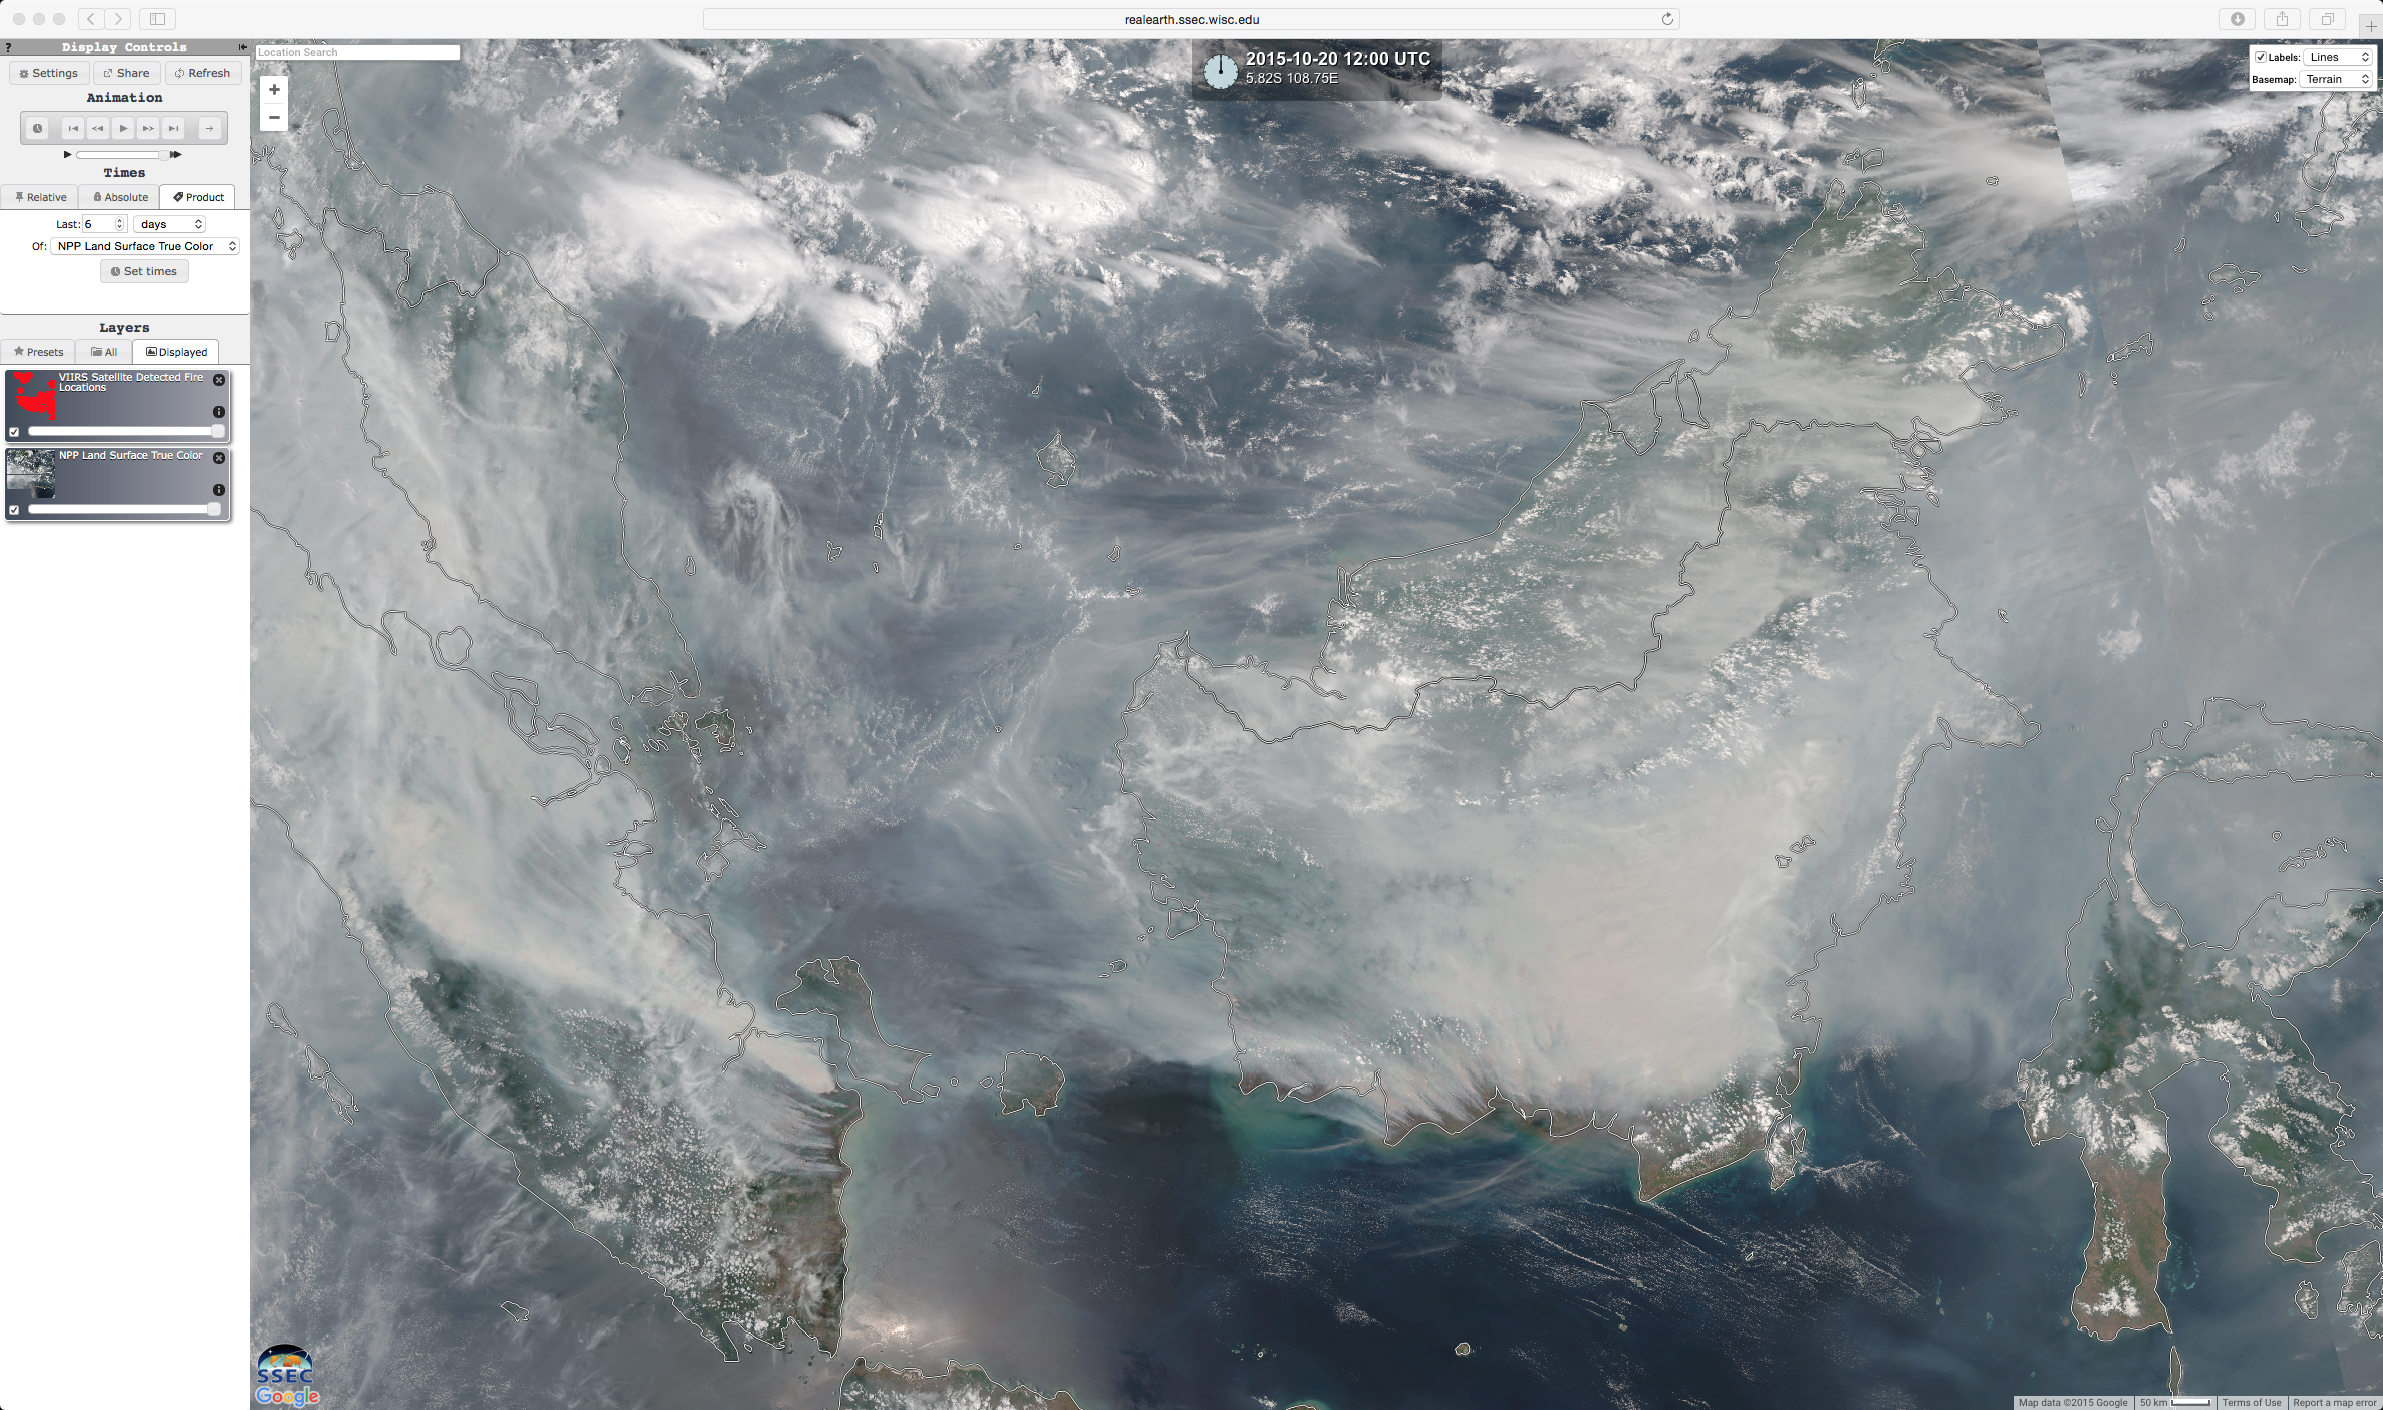 Daily comparisons of Suomi NPP VIIRS fire detections and true-color RGB images, from 20-26 October [click to animate]